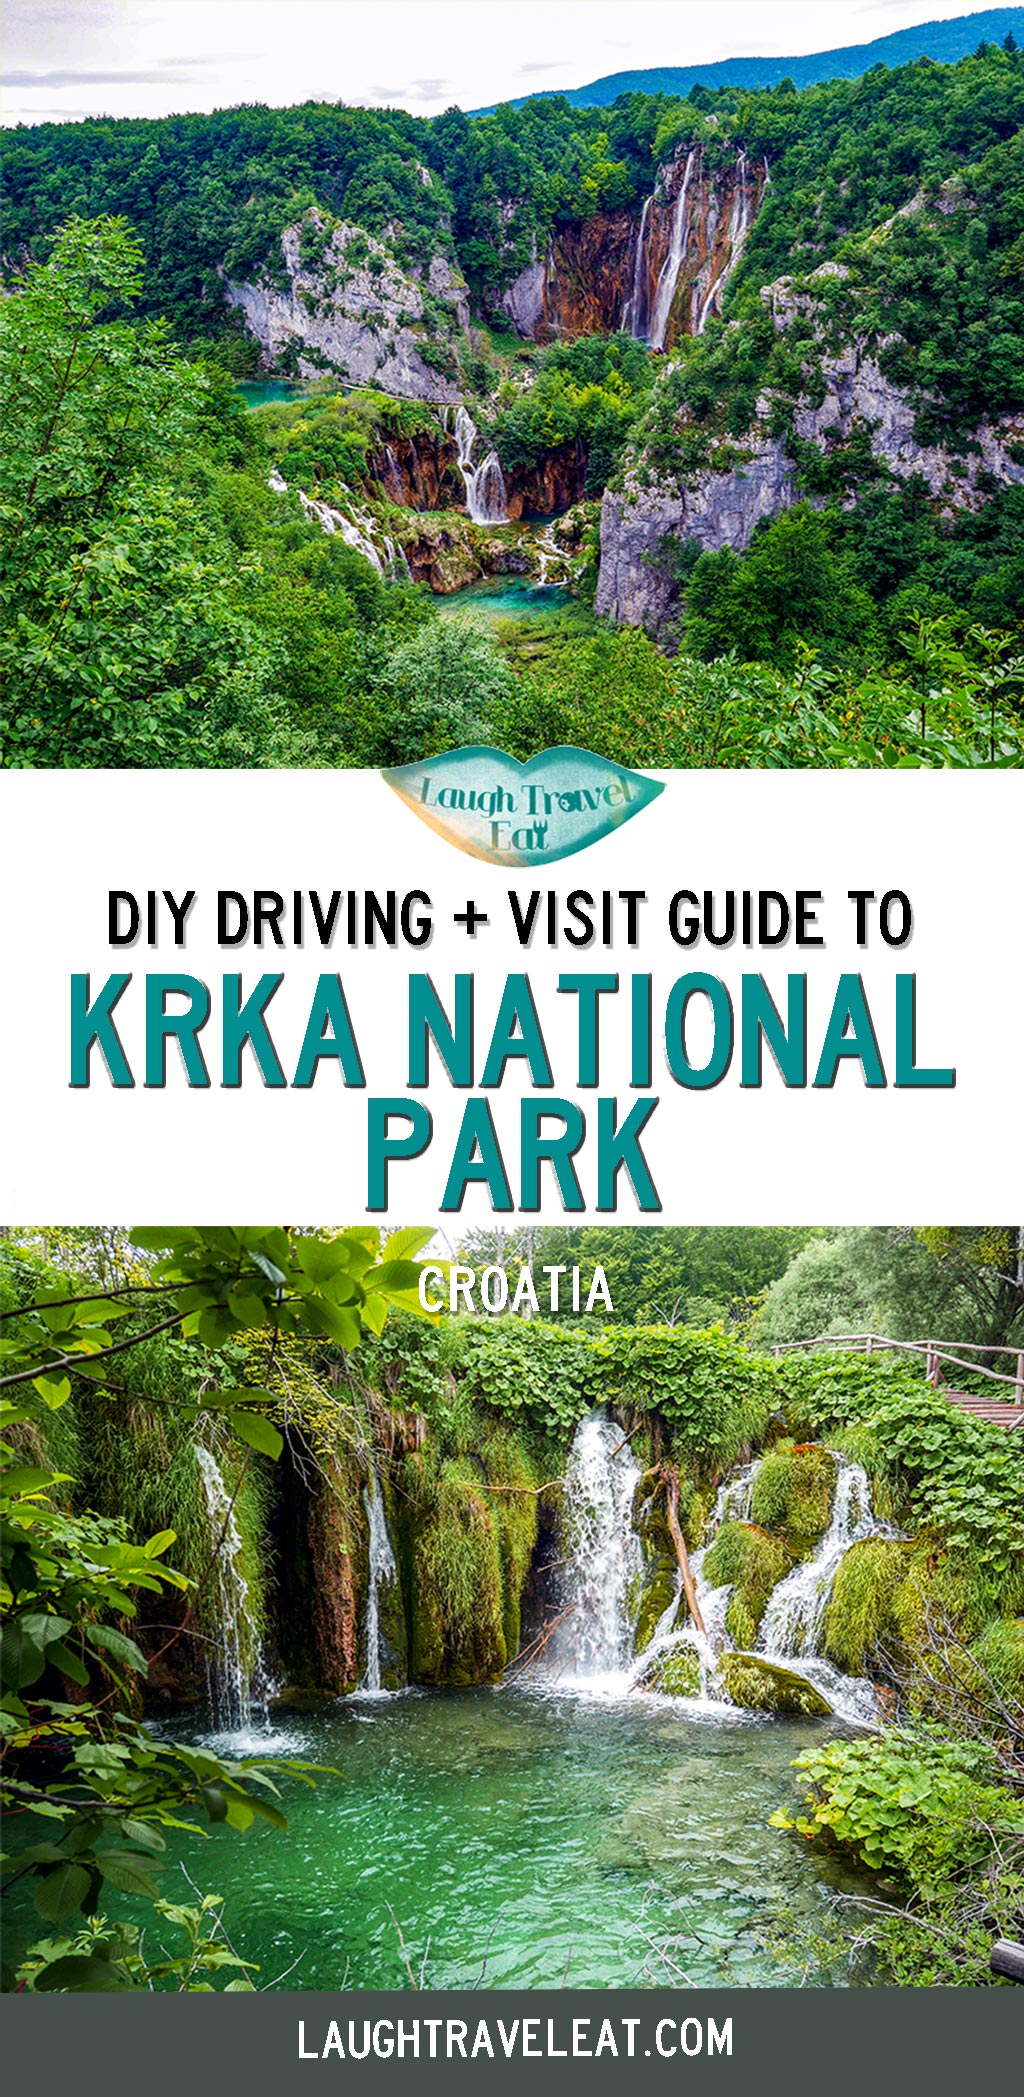 Krka National Park is the less famous sibling of Plitvice in Croatia. Located between Split and Zadar, it's a perfect day trip destination. Here's a self drive guide to Krka from Splie: #Krka #NationalPark #Croatia